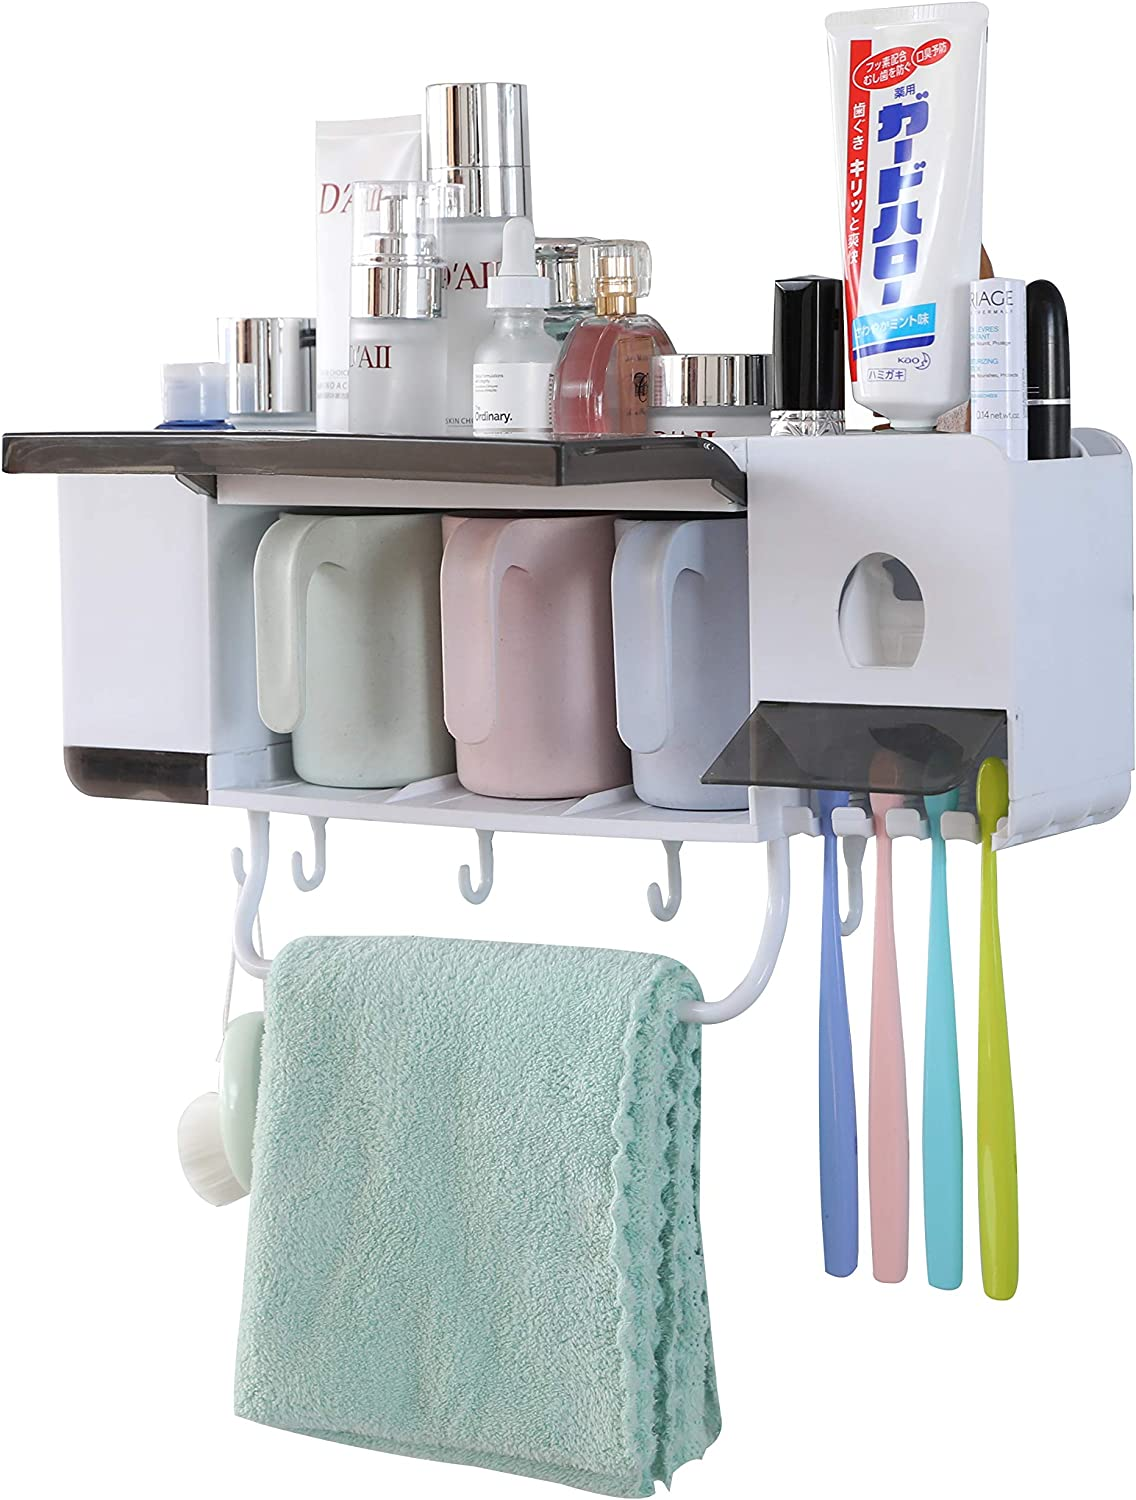 3 Brush Slots and 1 Towel Bar No Drill Need 2 Cups KQGO Wall Mounted Toothbrush Holder Toothbrush Cup with Dusk Proof Cover Makeup Storage Drawer 2 Cups Automatic Toothpaste Dispenser Squeezer